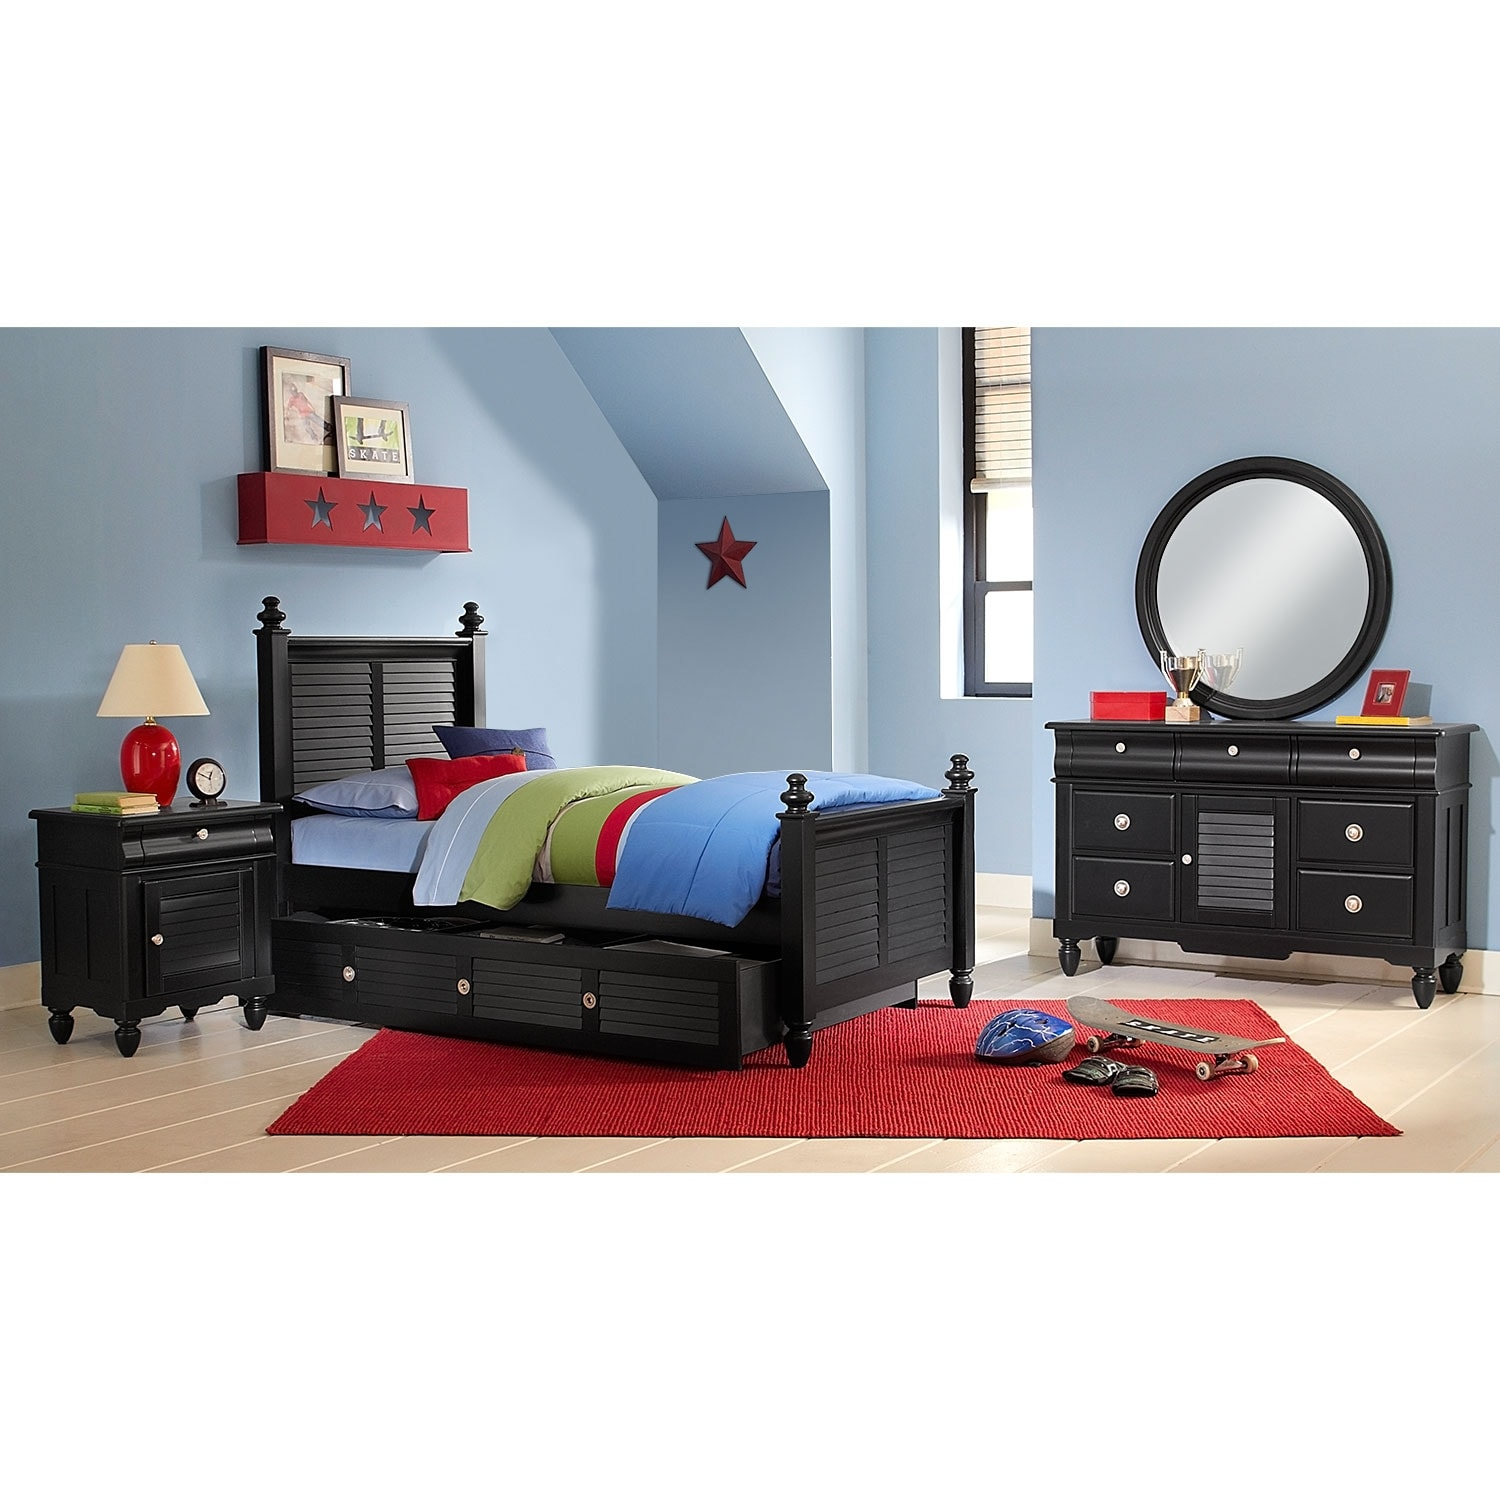 Seaside 7 Piece Twin Bedroom Set With Trundle   Black